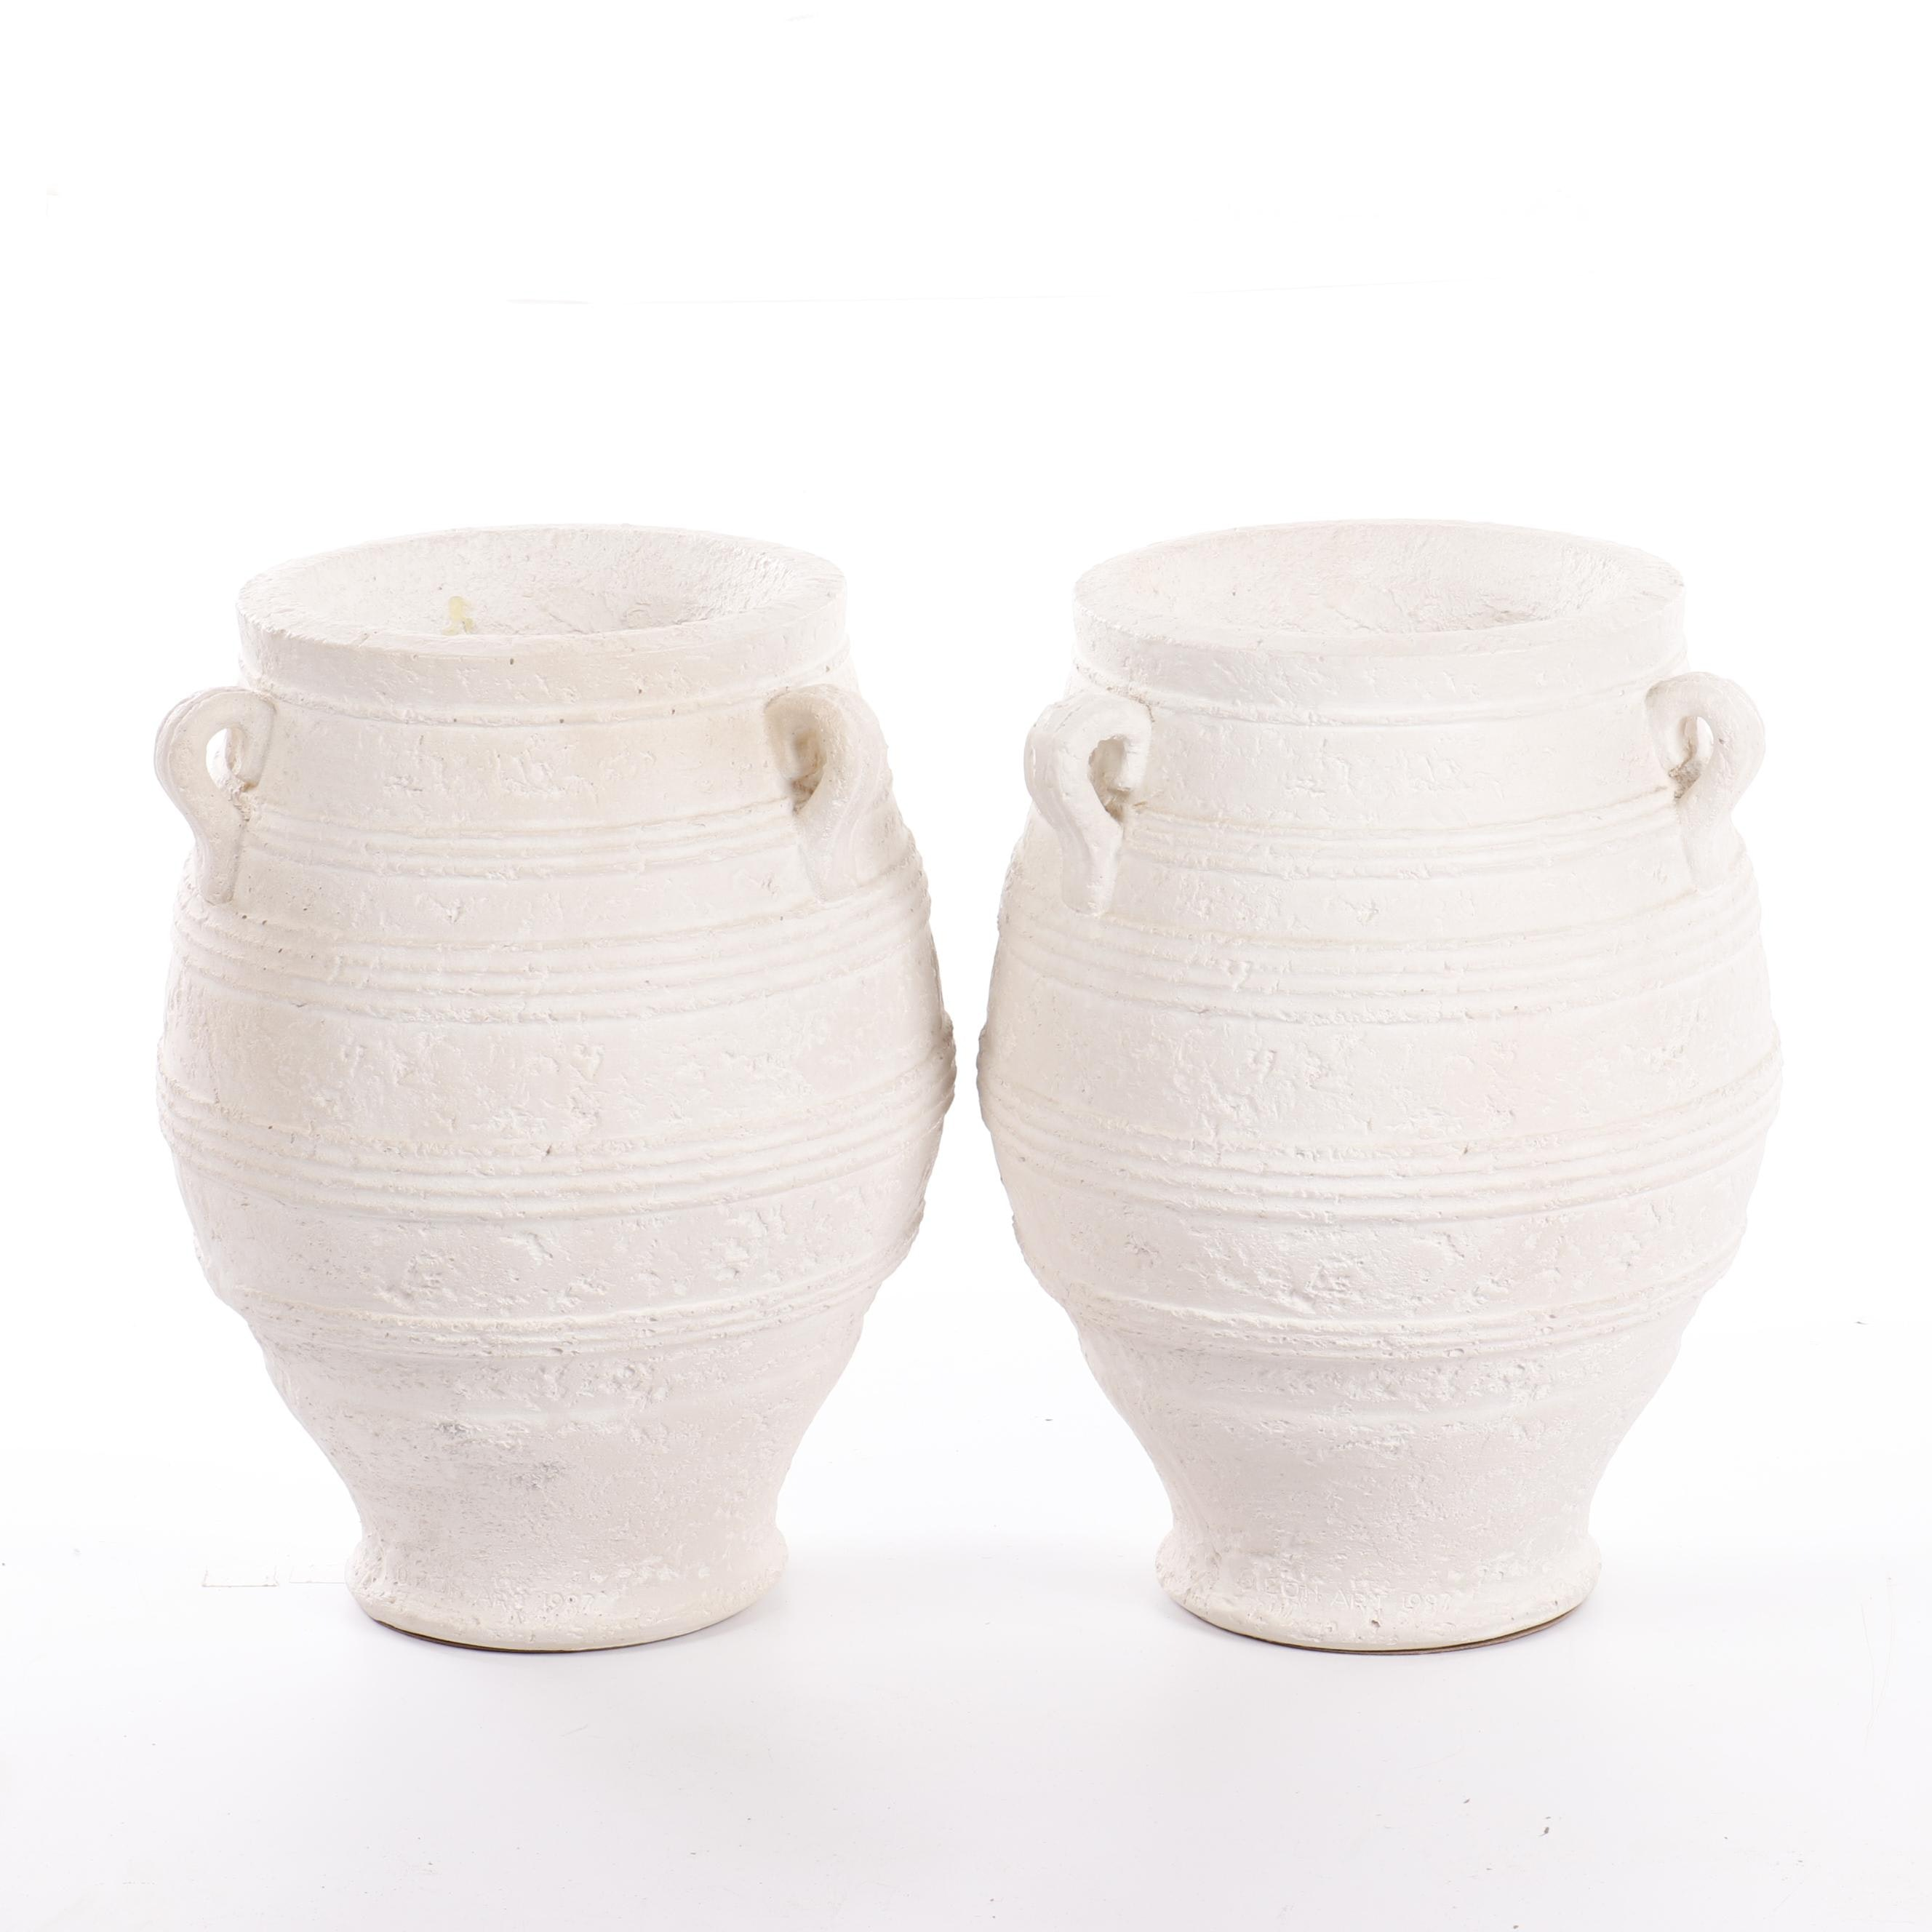 Textured Urn Form Planters